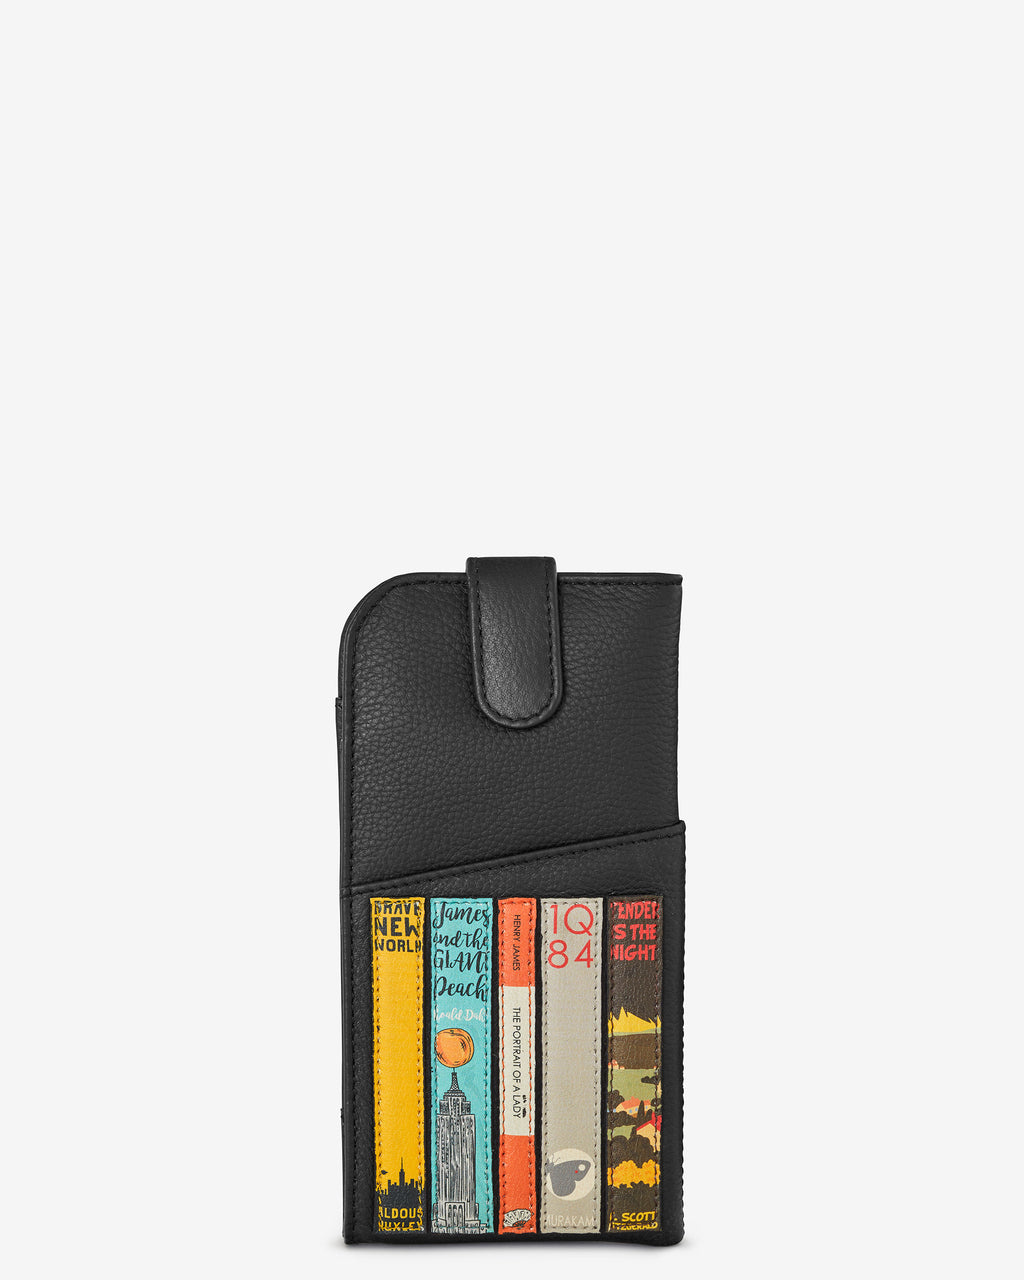 Bookworm Library Leather Glasses Case